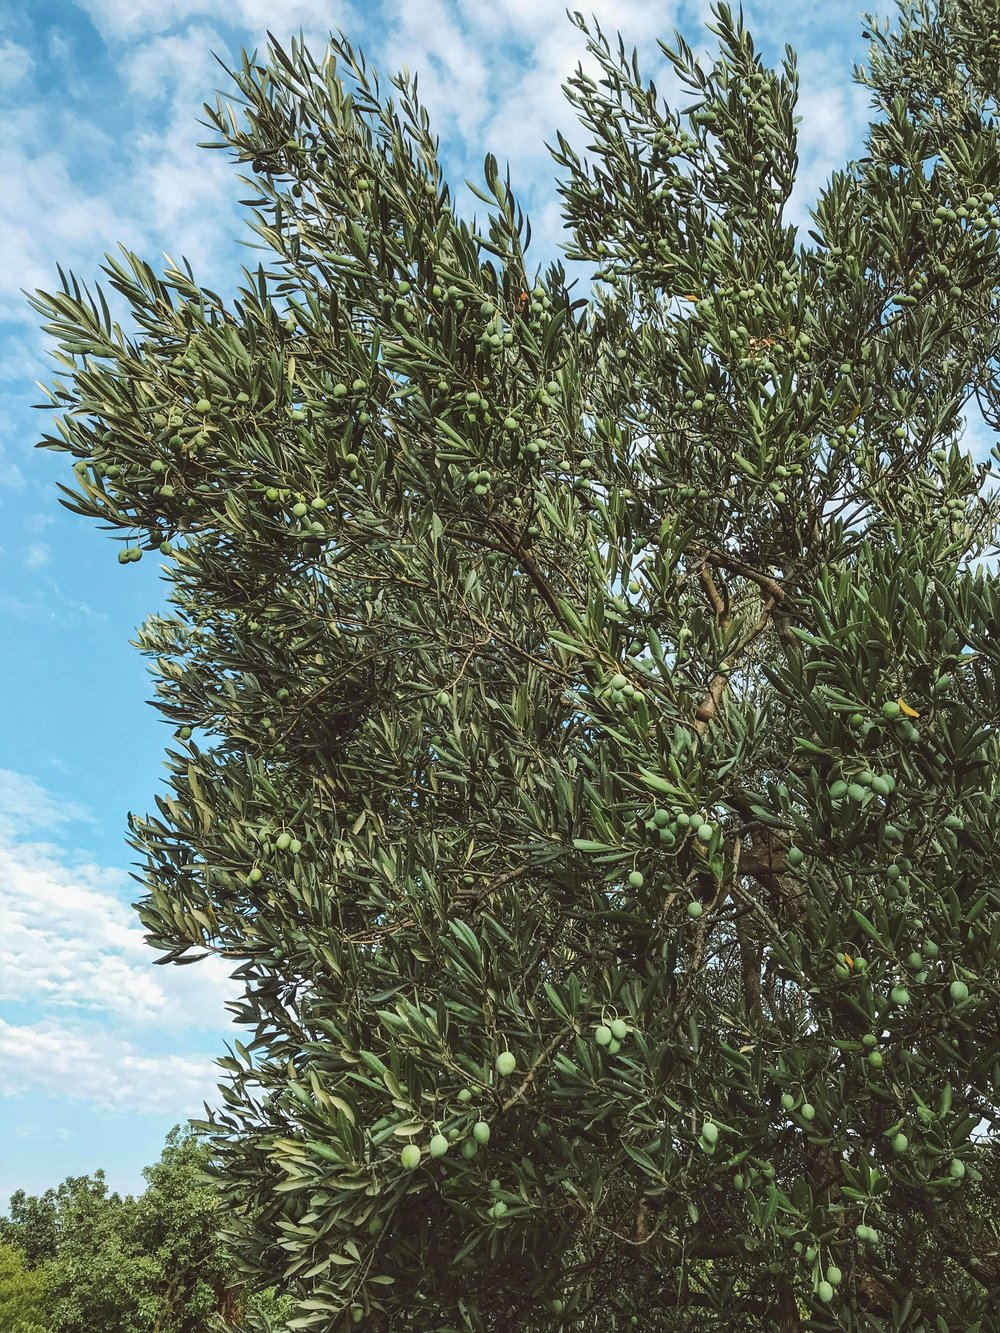 Olives trees are prolific in Croatia. There are ideal growing conditions for cultivating olives thanks to Croatia's geographical position, soil composition and microclimate. Many locals will press their own oil to sell at the markets.